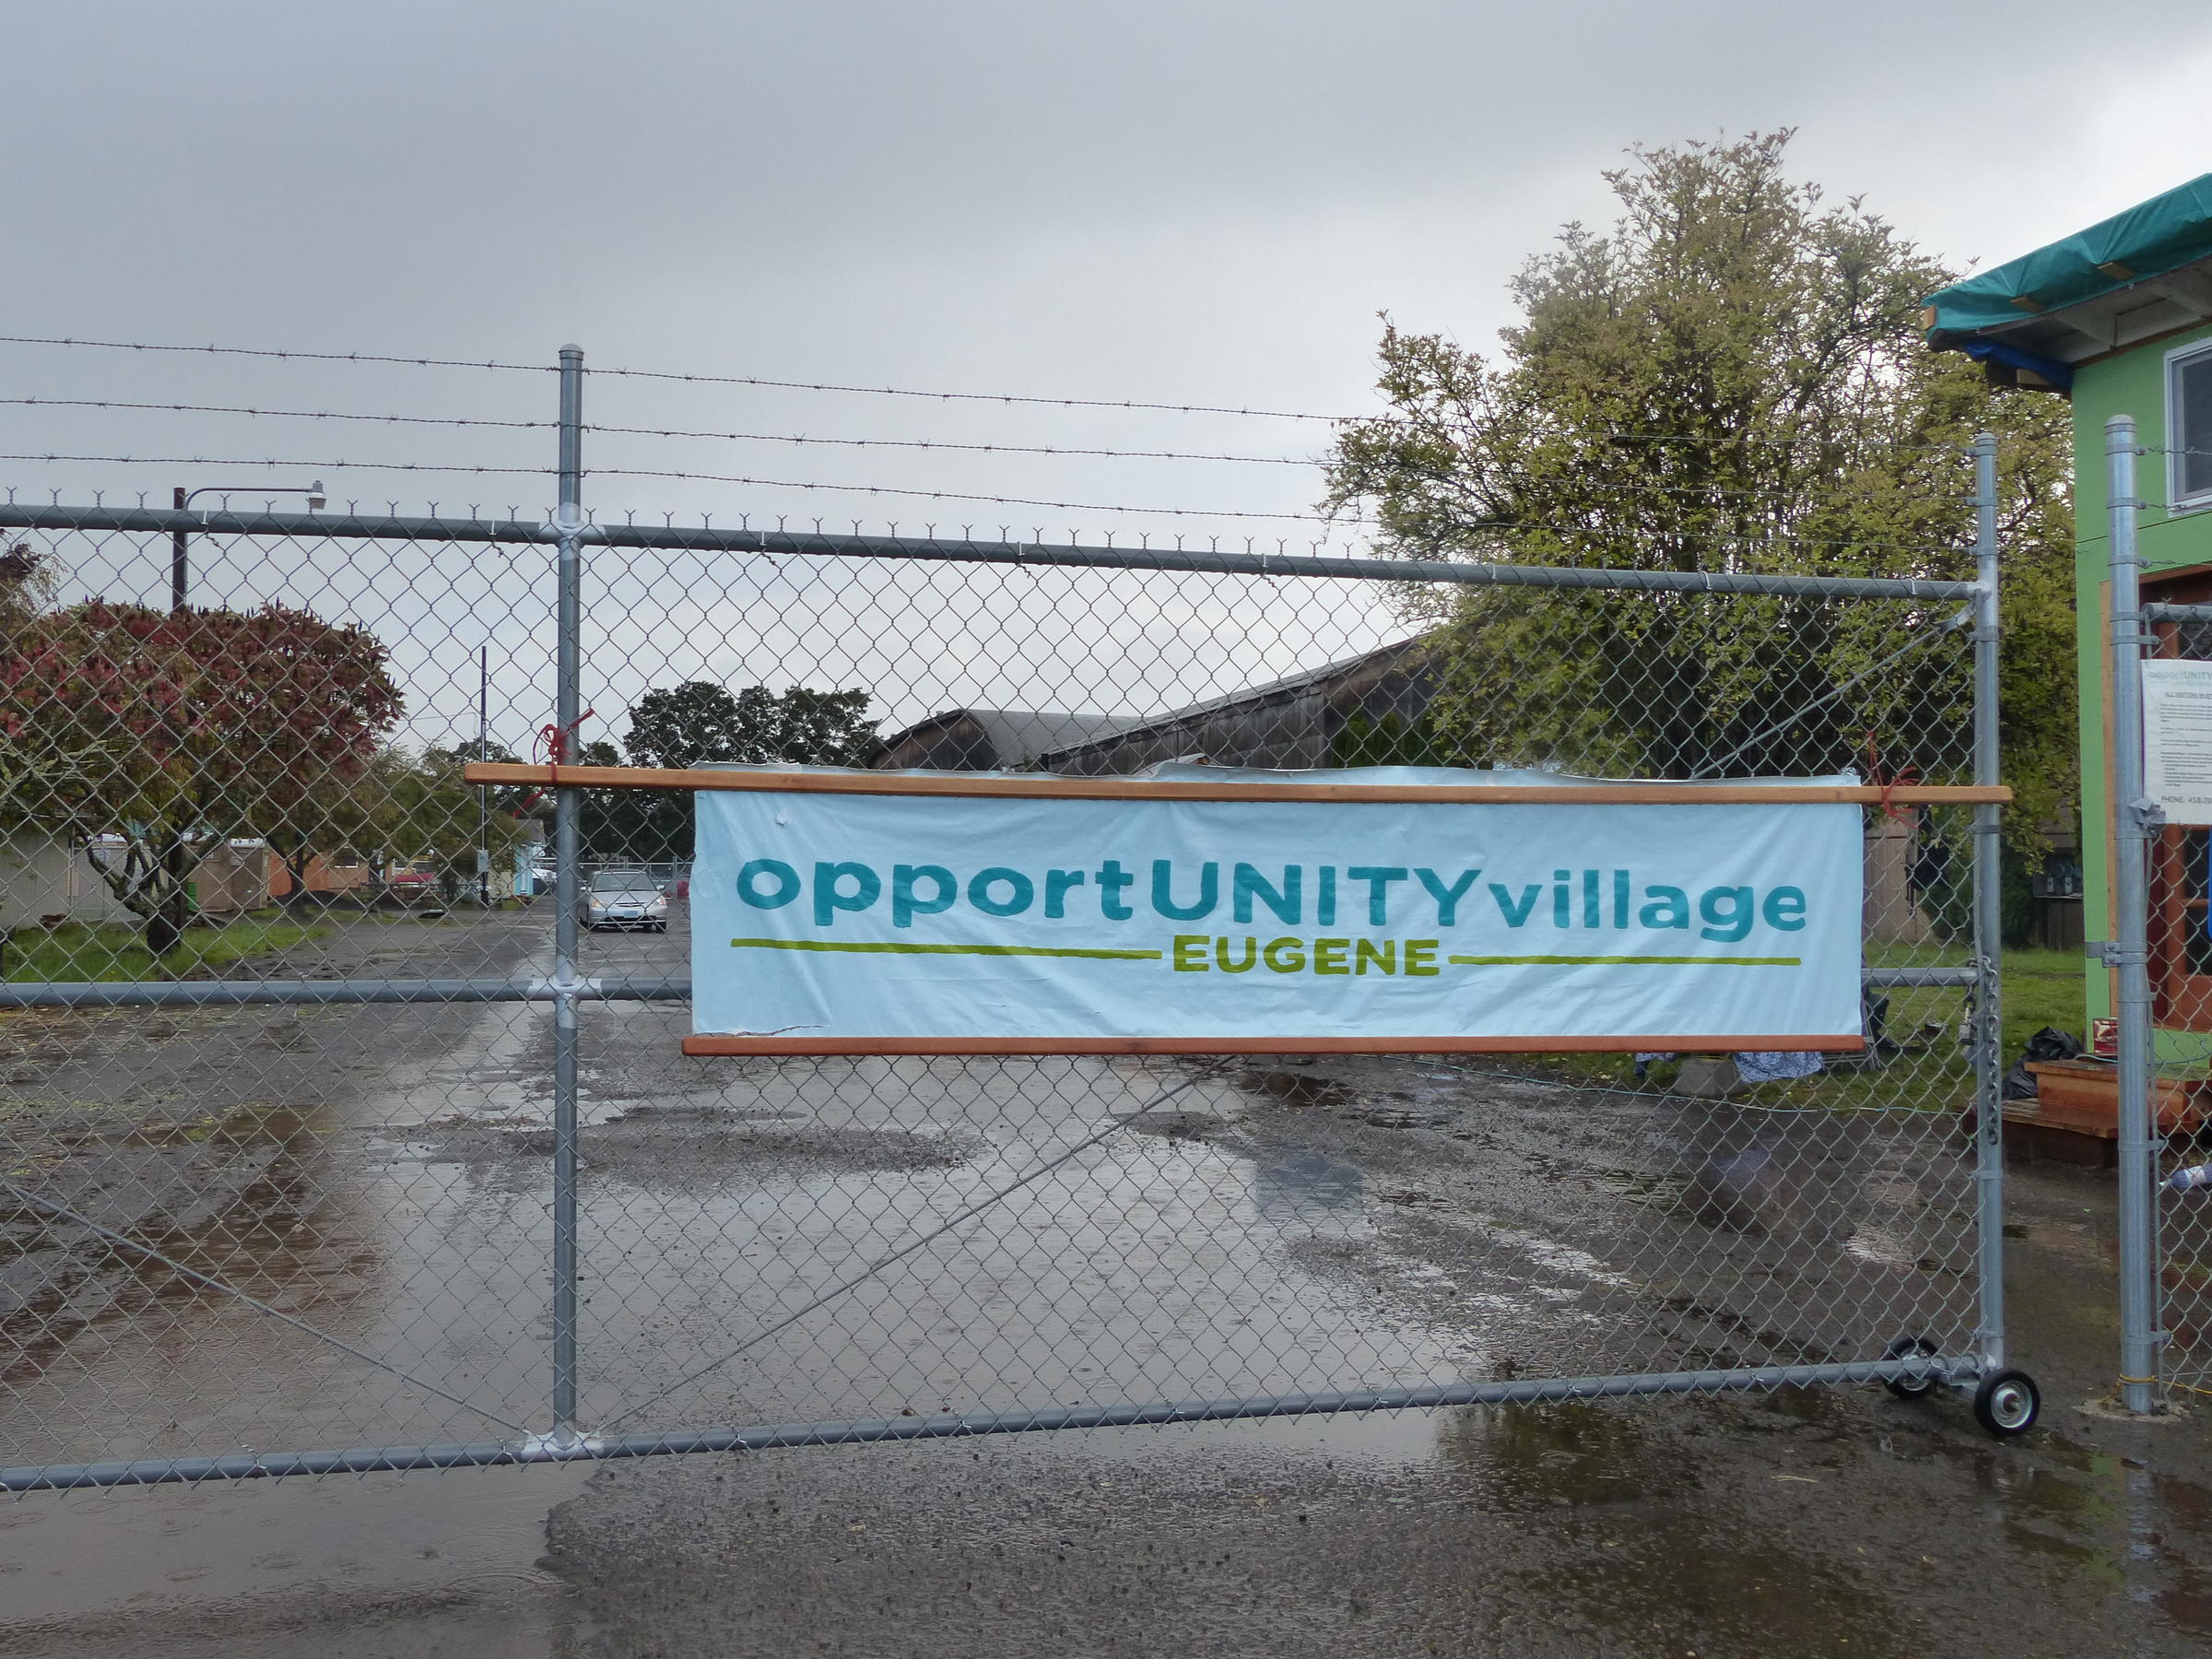 Opportunity Village: Eugene\'s Newest Gated Community | KLCC